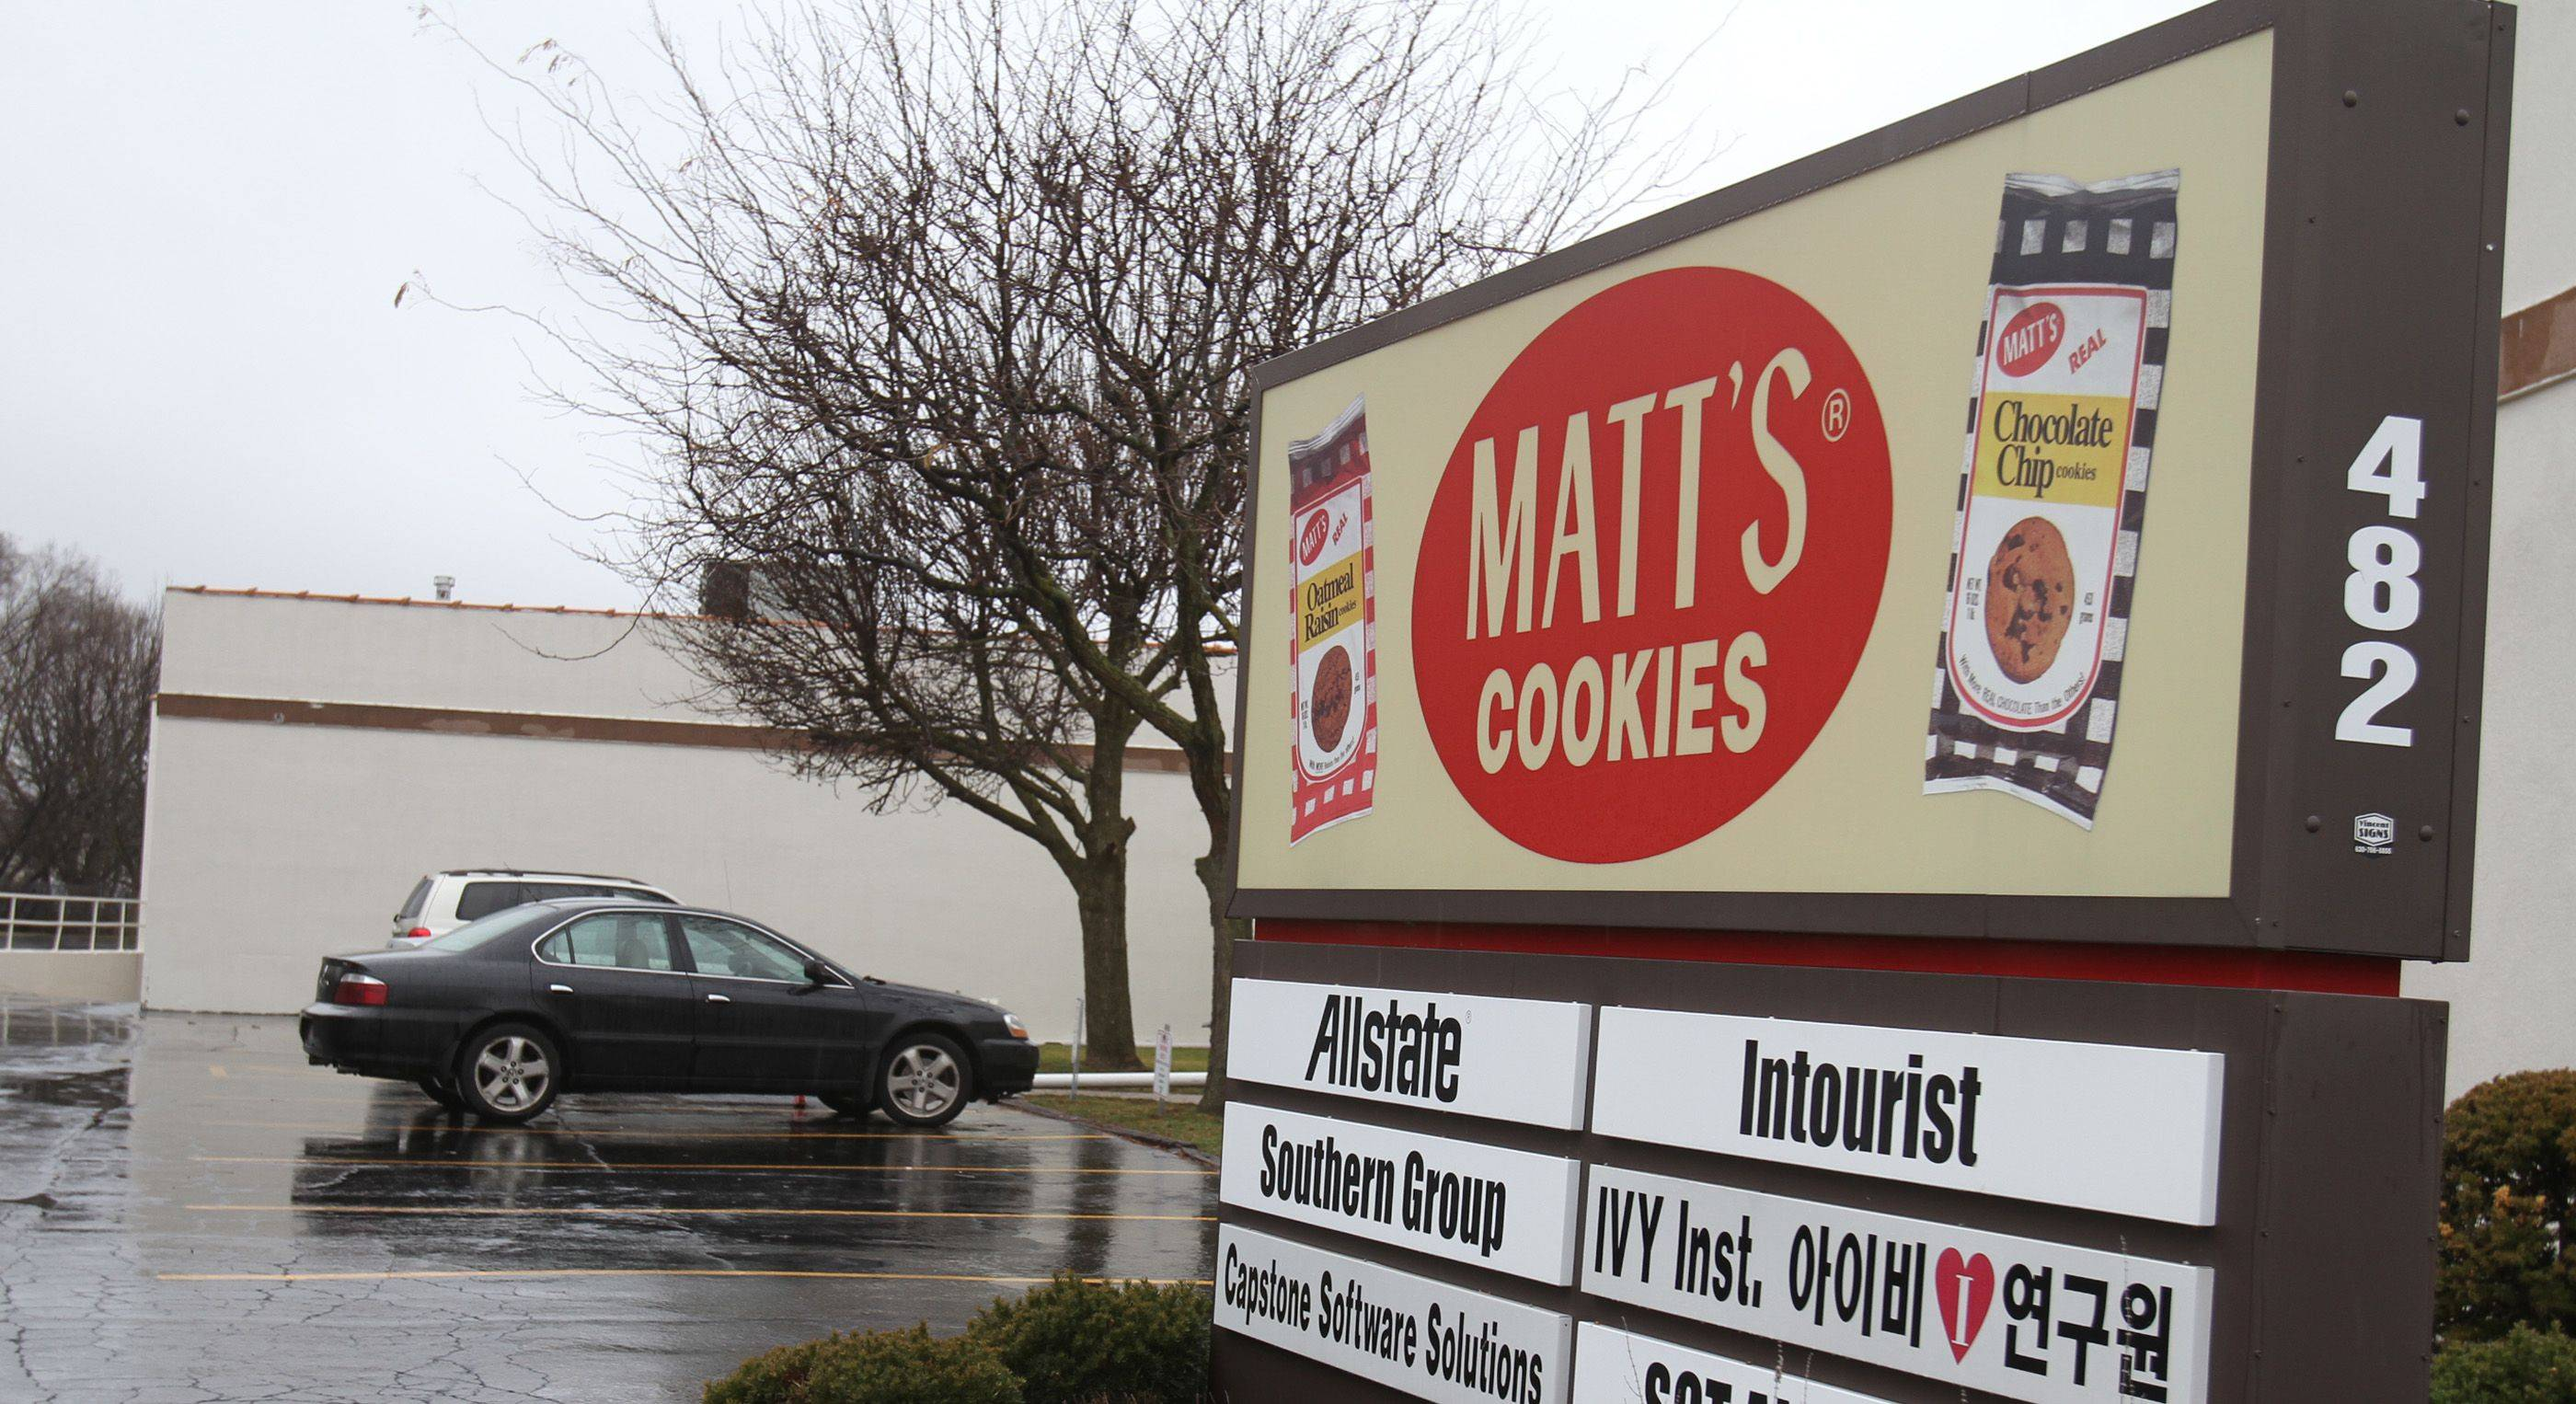 Matt's Cookies are distributed throughout the Chicagoland area and even into Wisconsin.